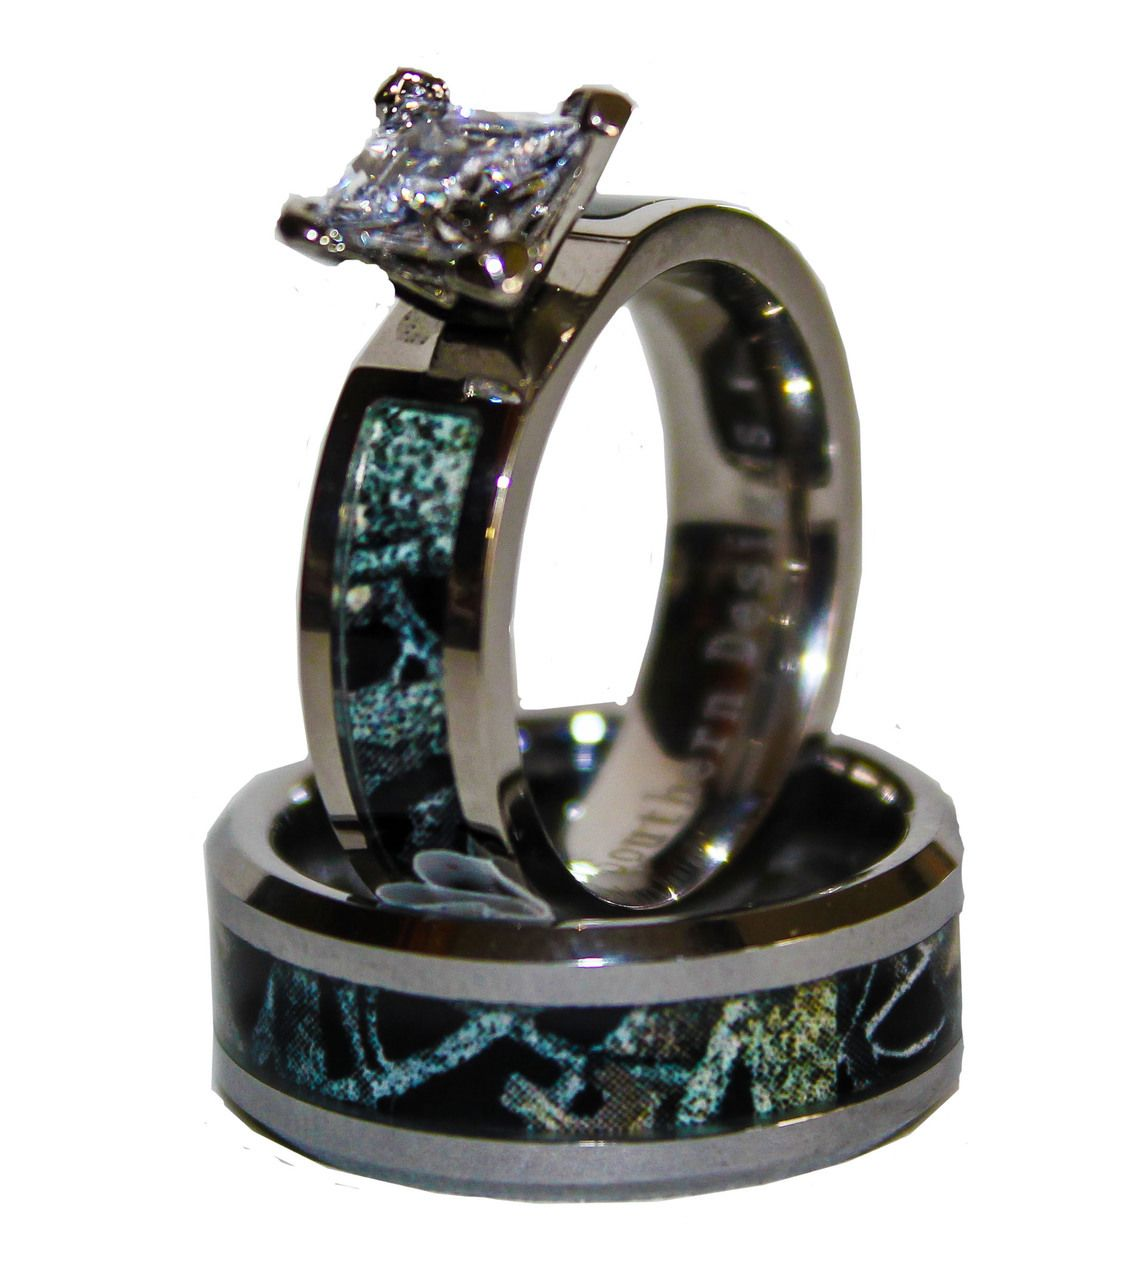 camo wedding band sets Black Camo on Silver Band Couples Ring Set With Stone